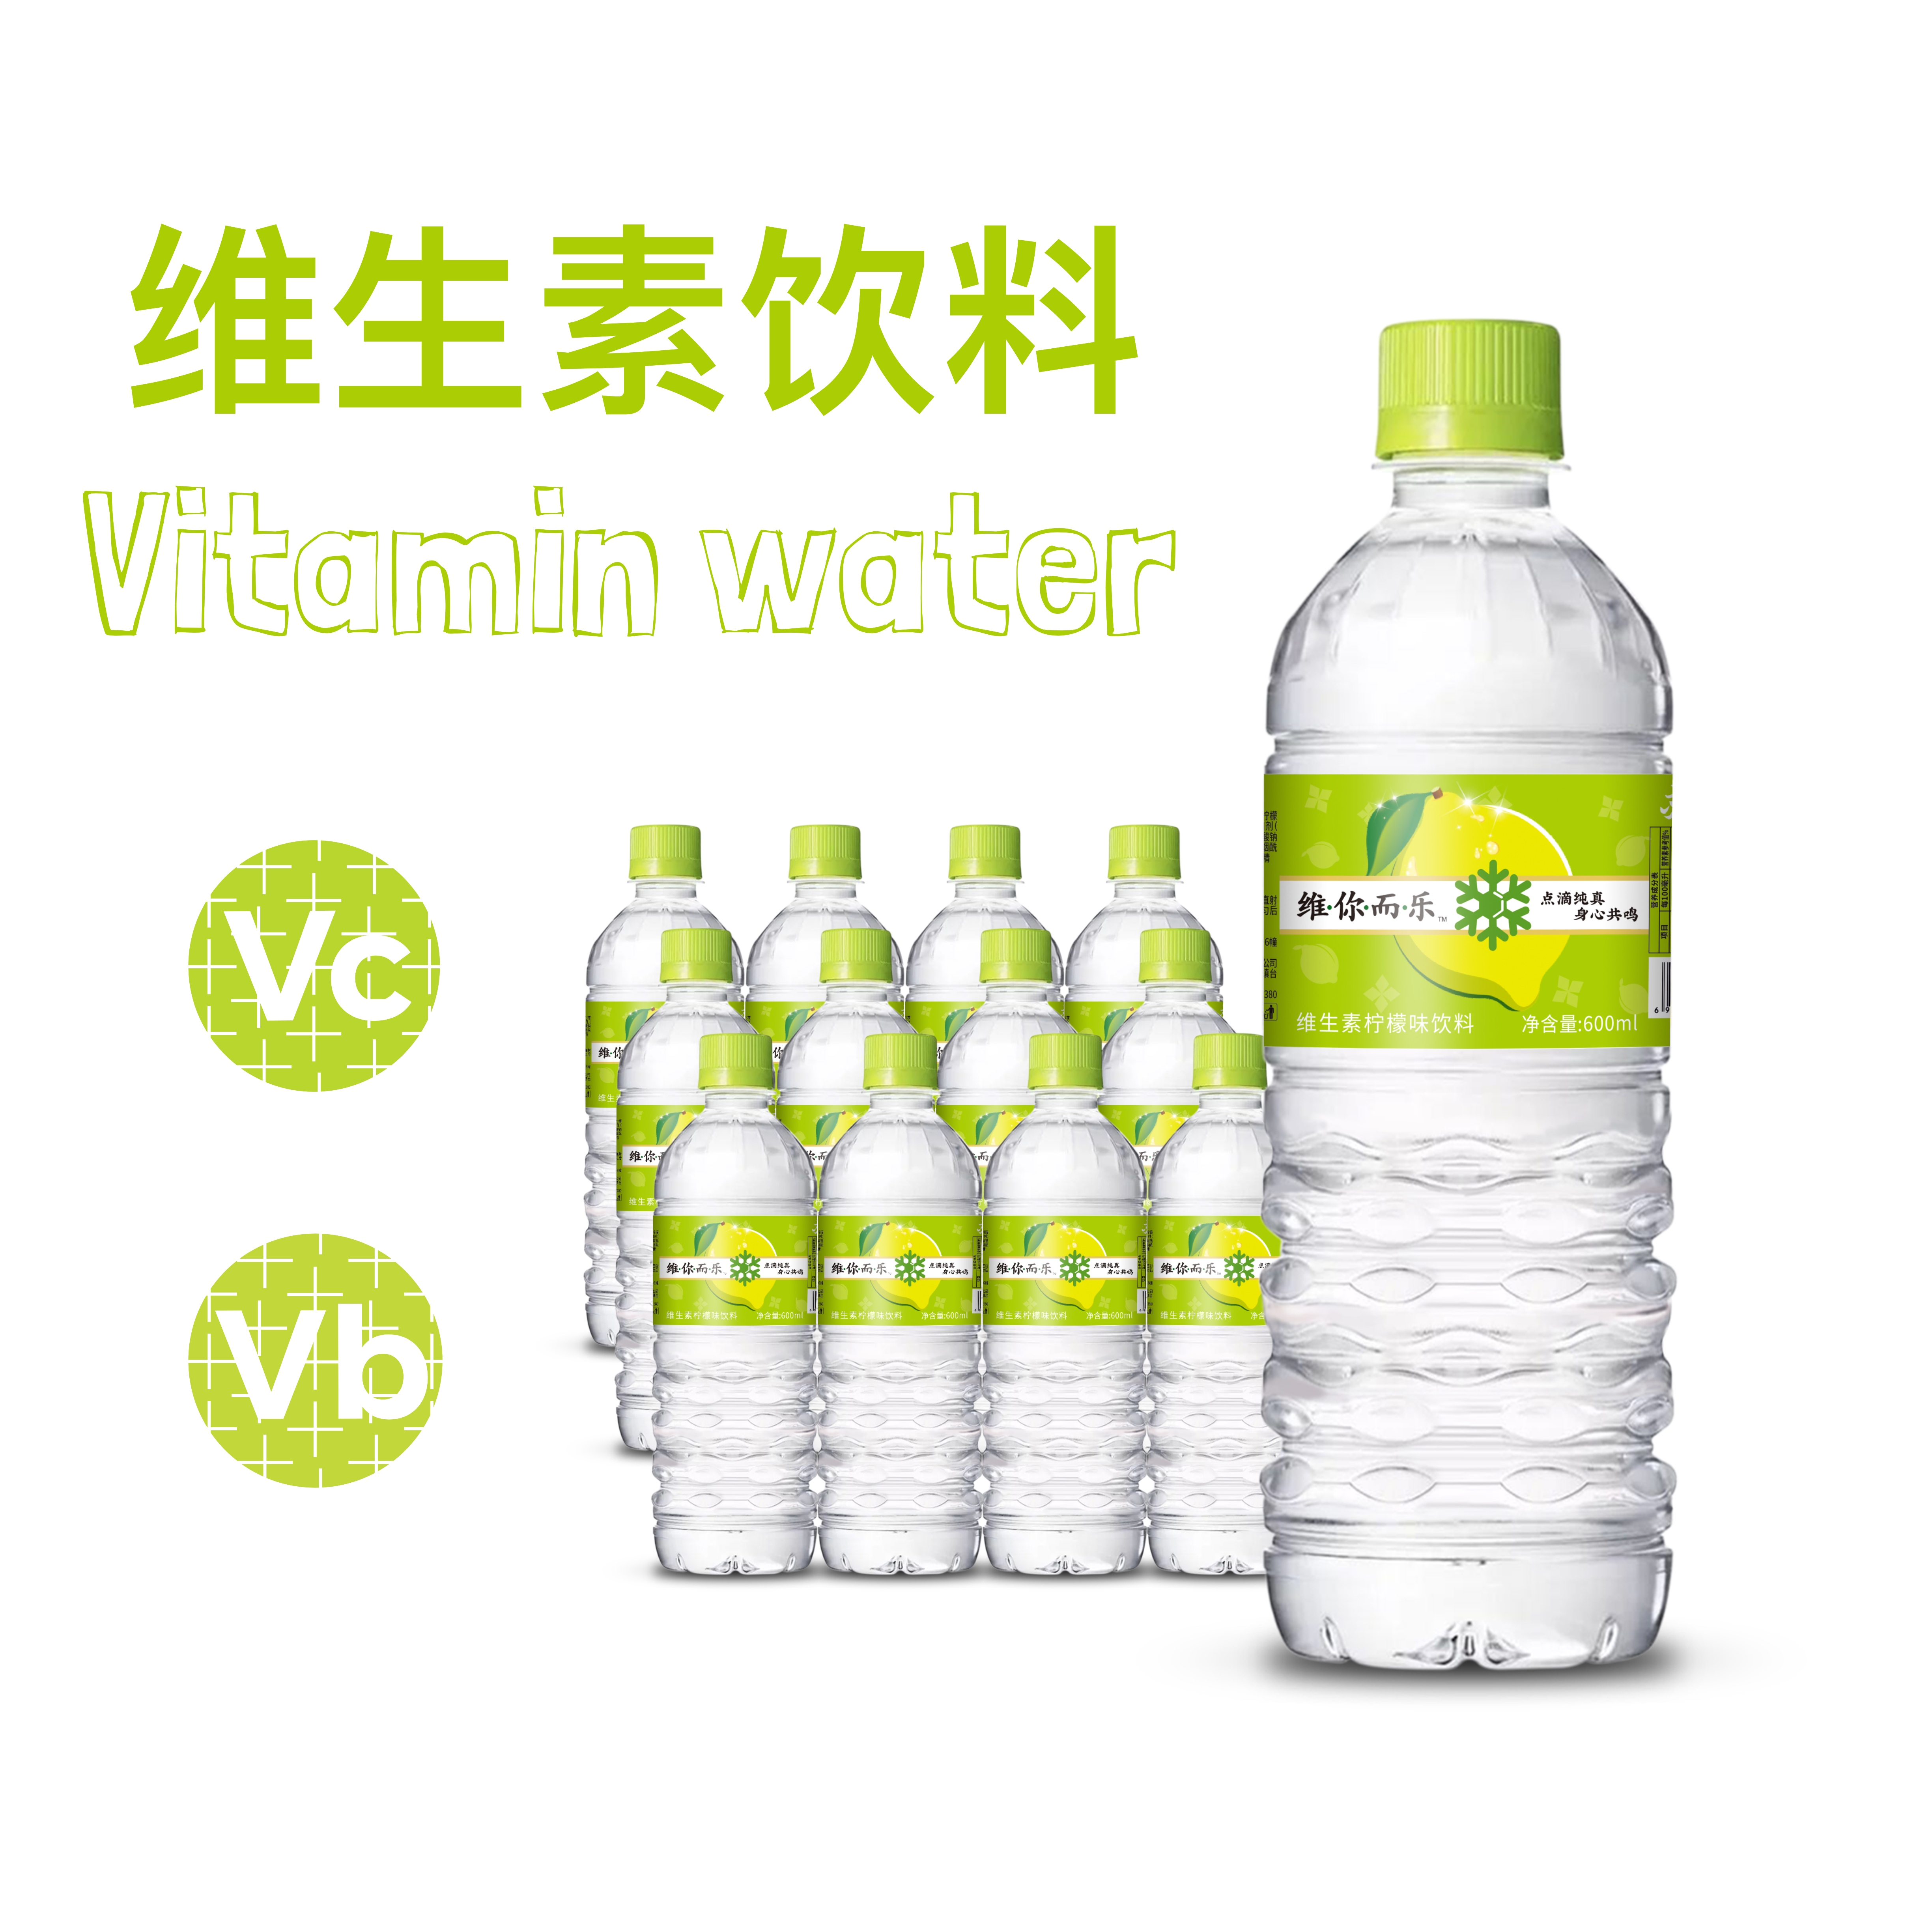 Suqiu vitamin sports functional drink good enough portion 600ml lime flavor 12 bottled food package